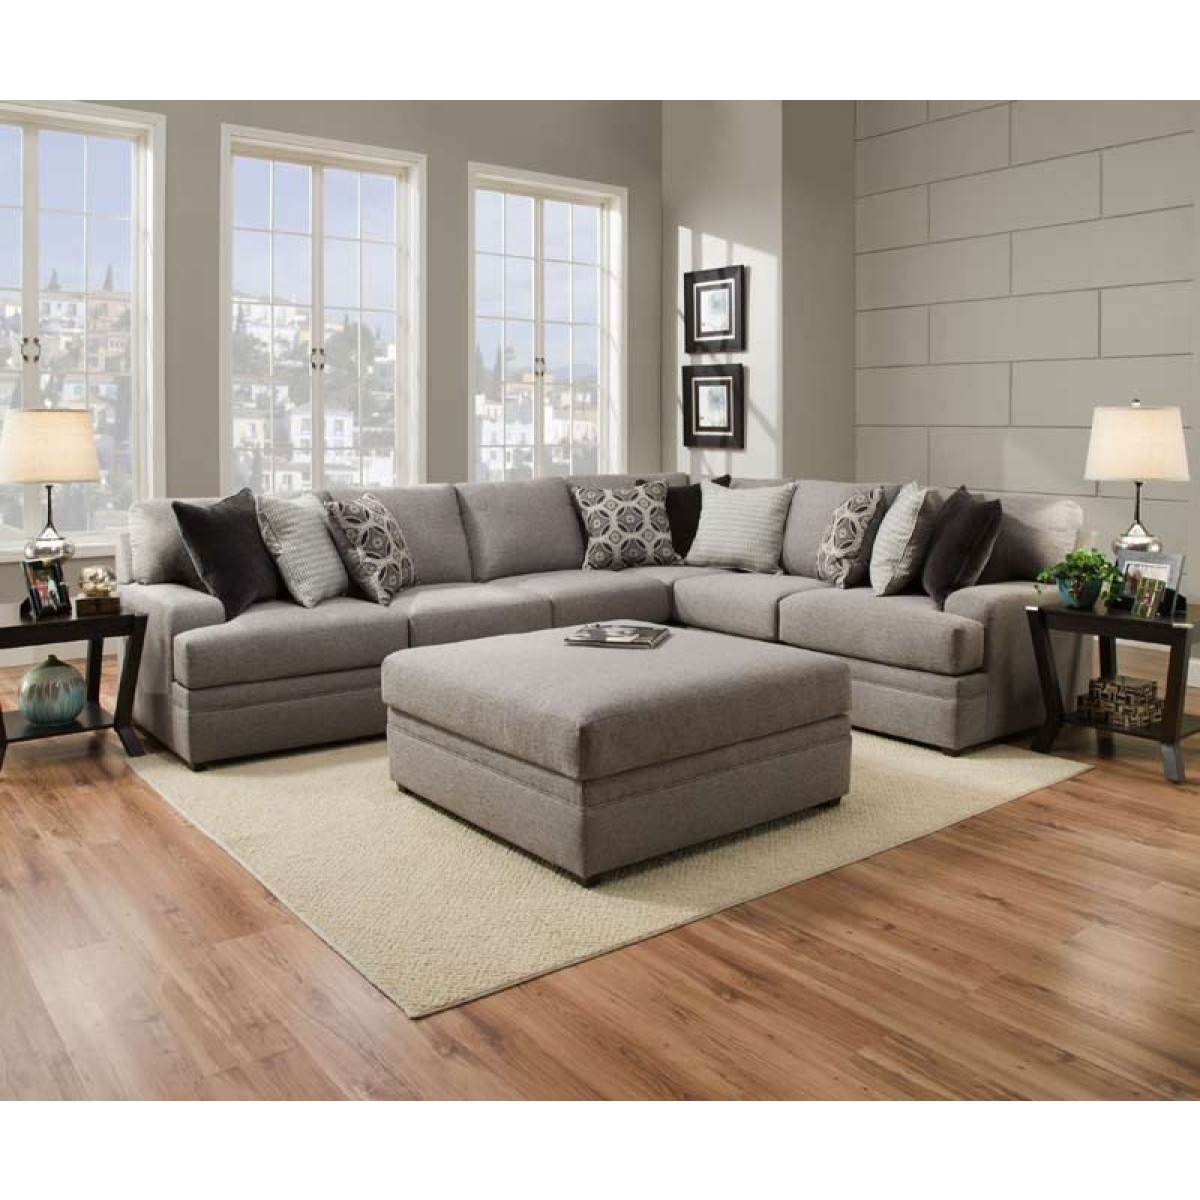 Uptown Loft White 2 Pc Sectional in Tatum Dark Grey 2 Piece Sectionals With Raf Chaise (Image 30 of 30)